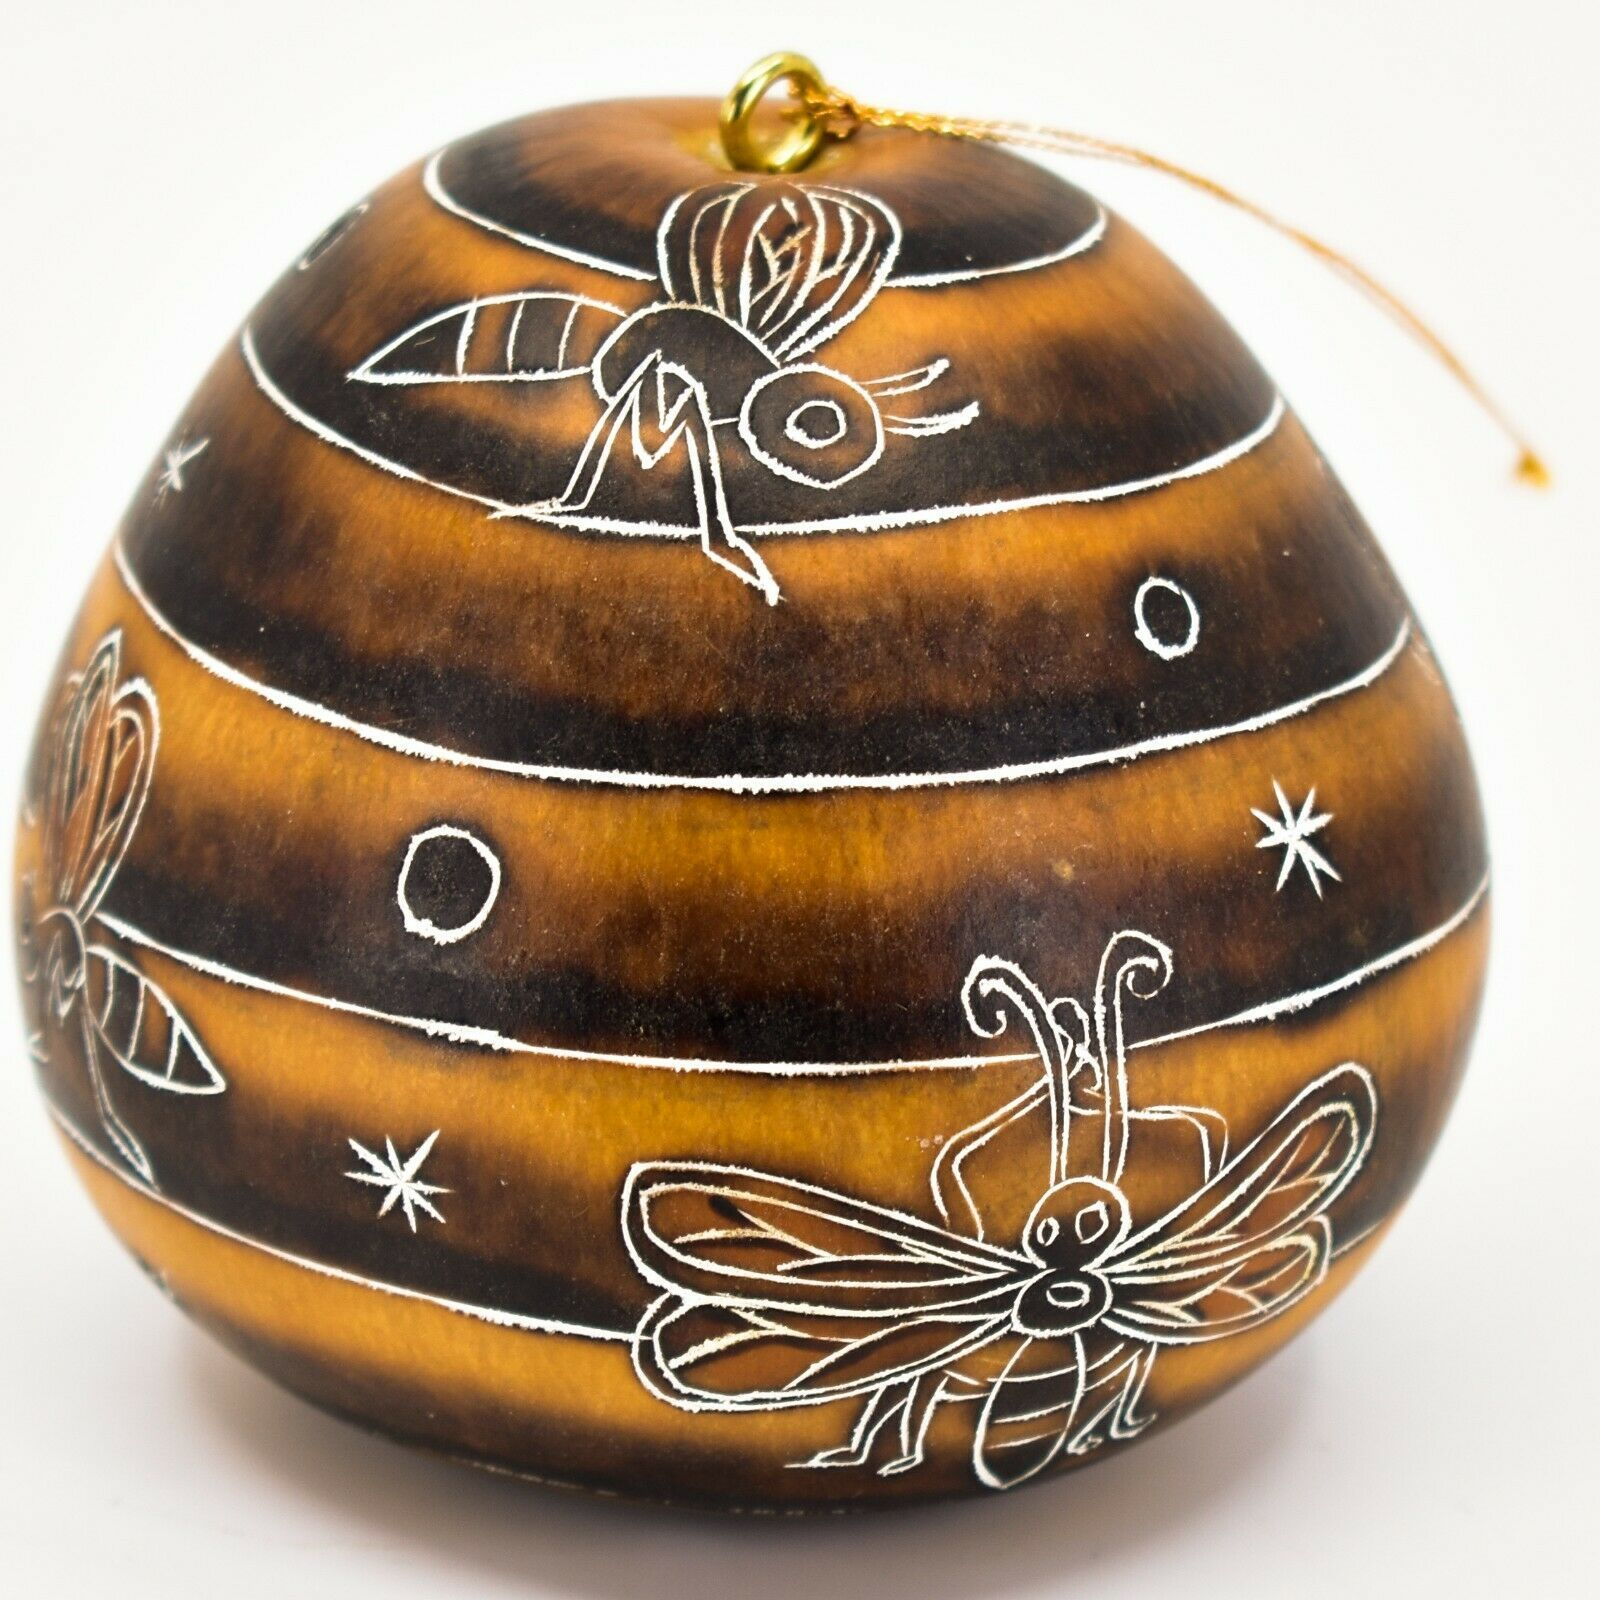 Handcrafted Carved Gourd Art Honeybee Beehive Bees Pollinator Ornament Made Peru